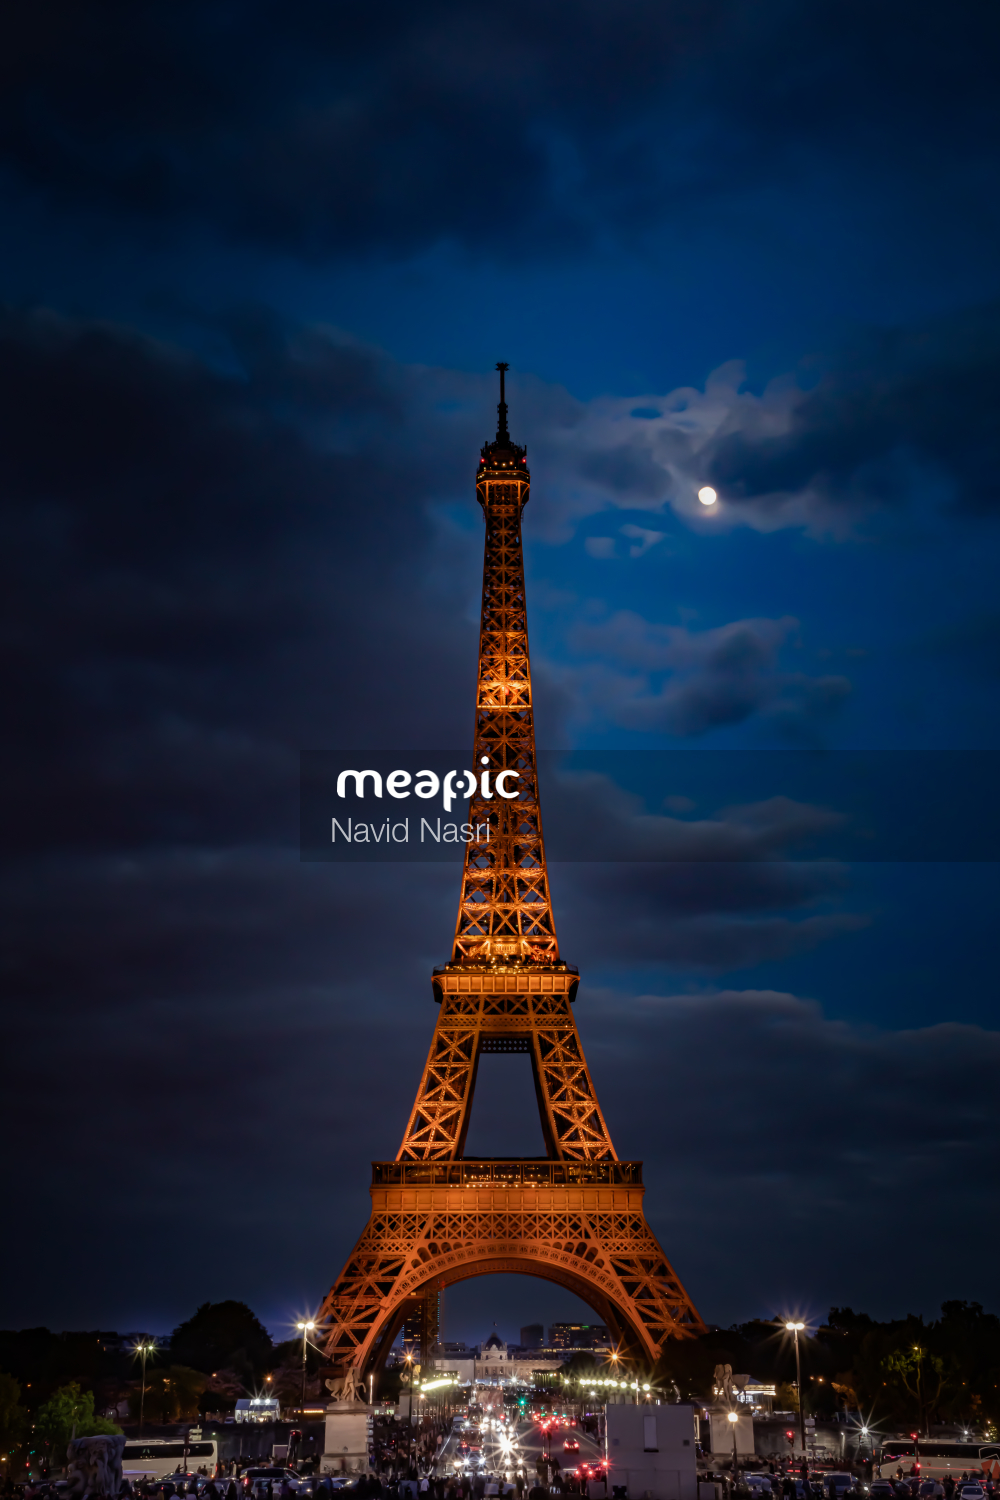 Clock Tower Lit Up At Night With Eiffel Tower In The Background Stock Photo · Meapic